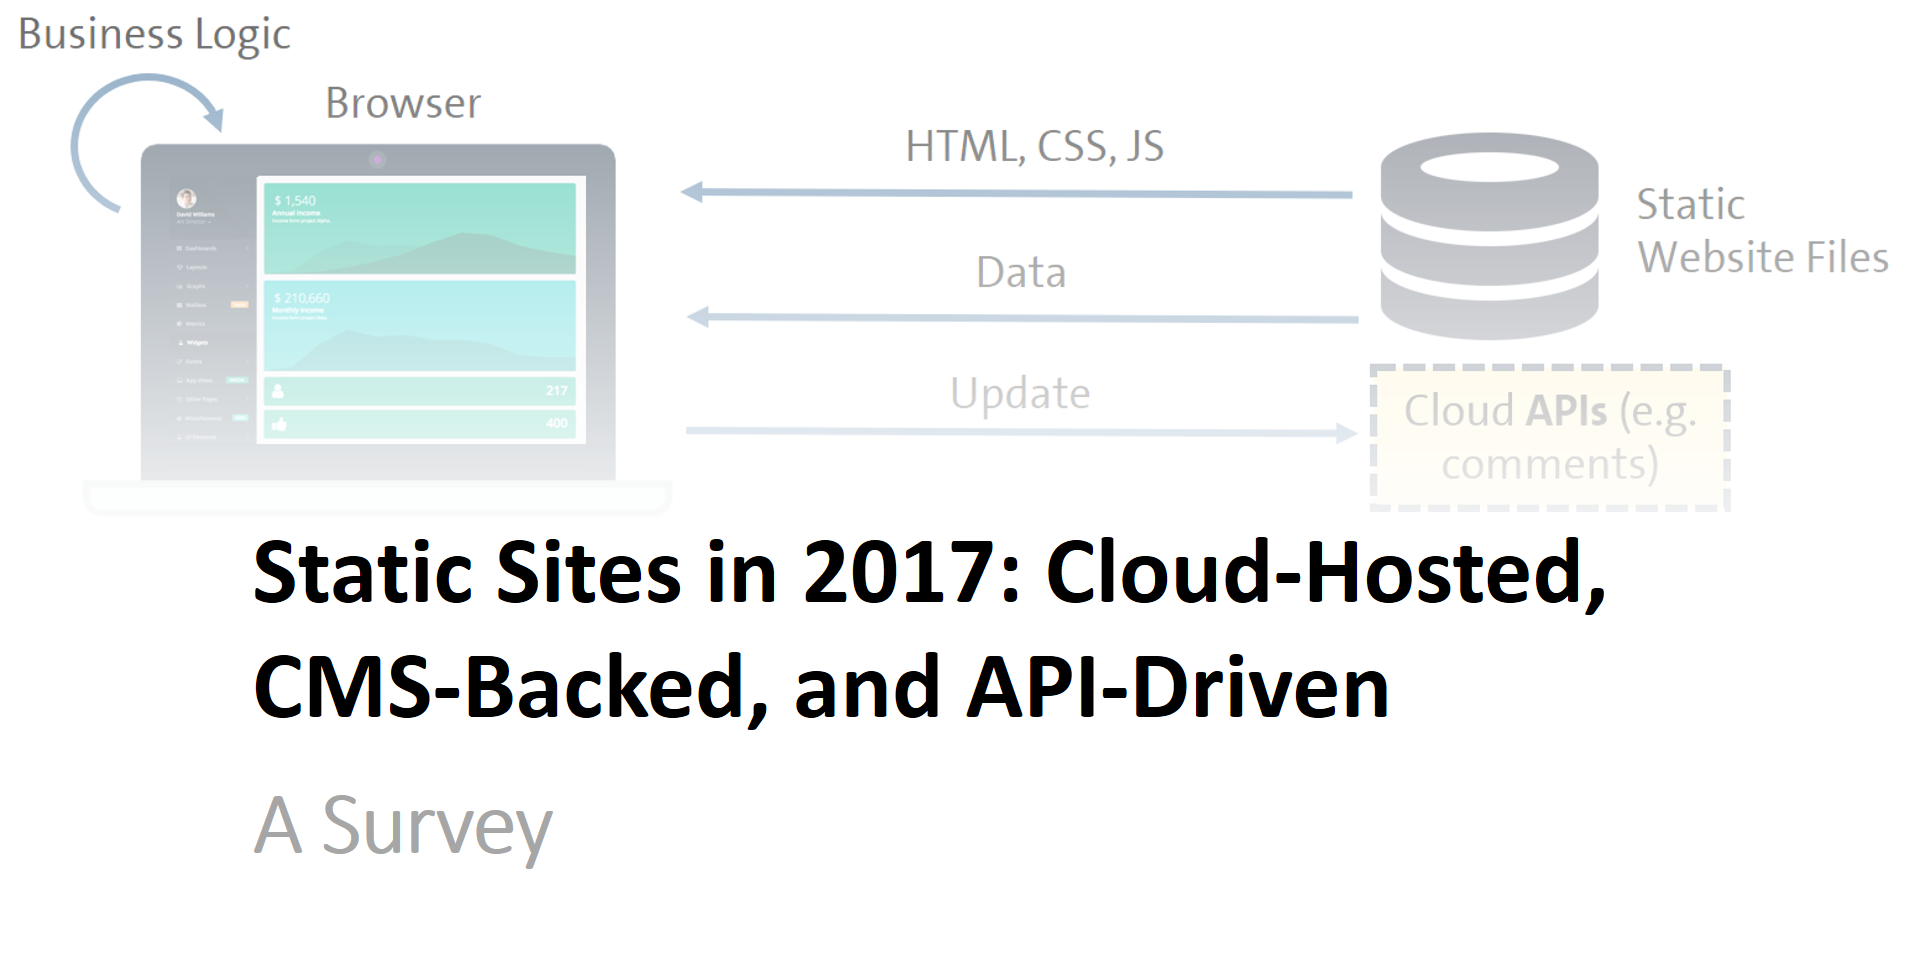 Building Static Sites in 2017: Cloud-Hosted, CMS-Backed, and